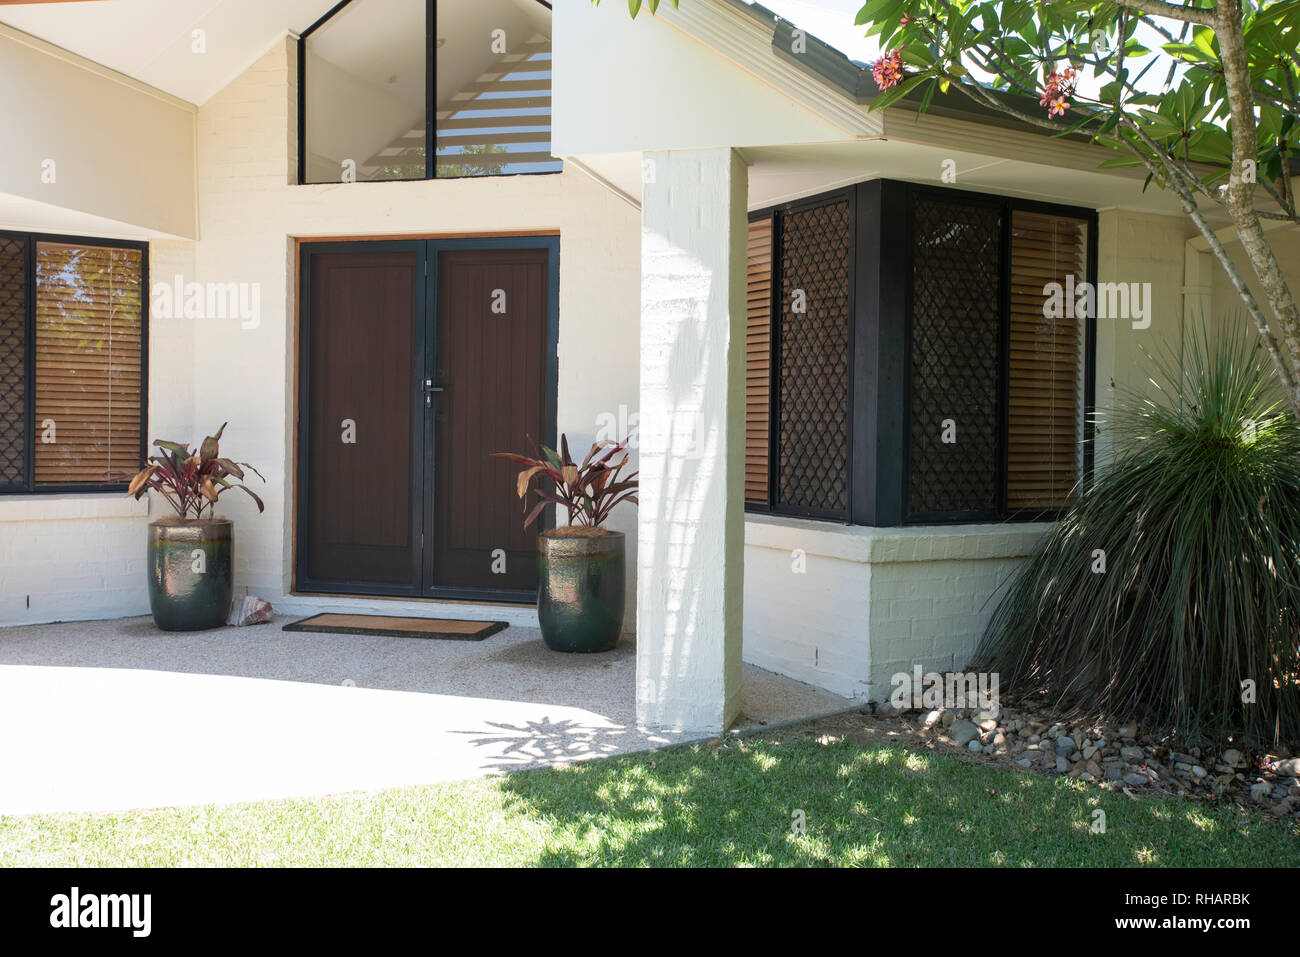 Real estate images of the exterior of a house for sale - Stock Image